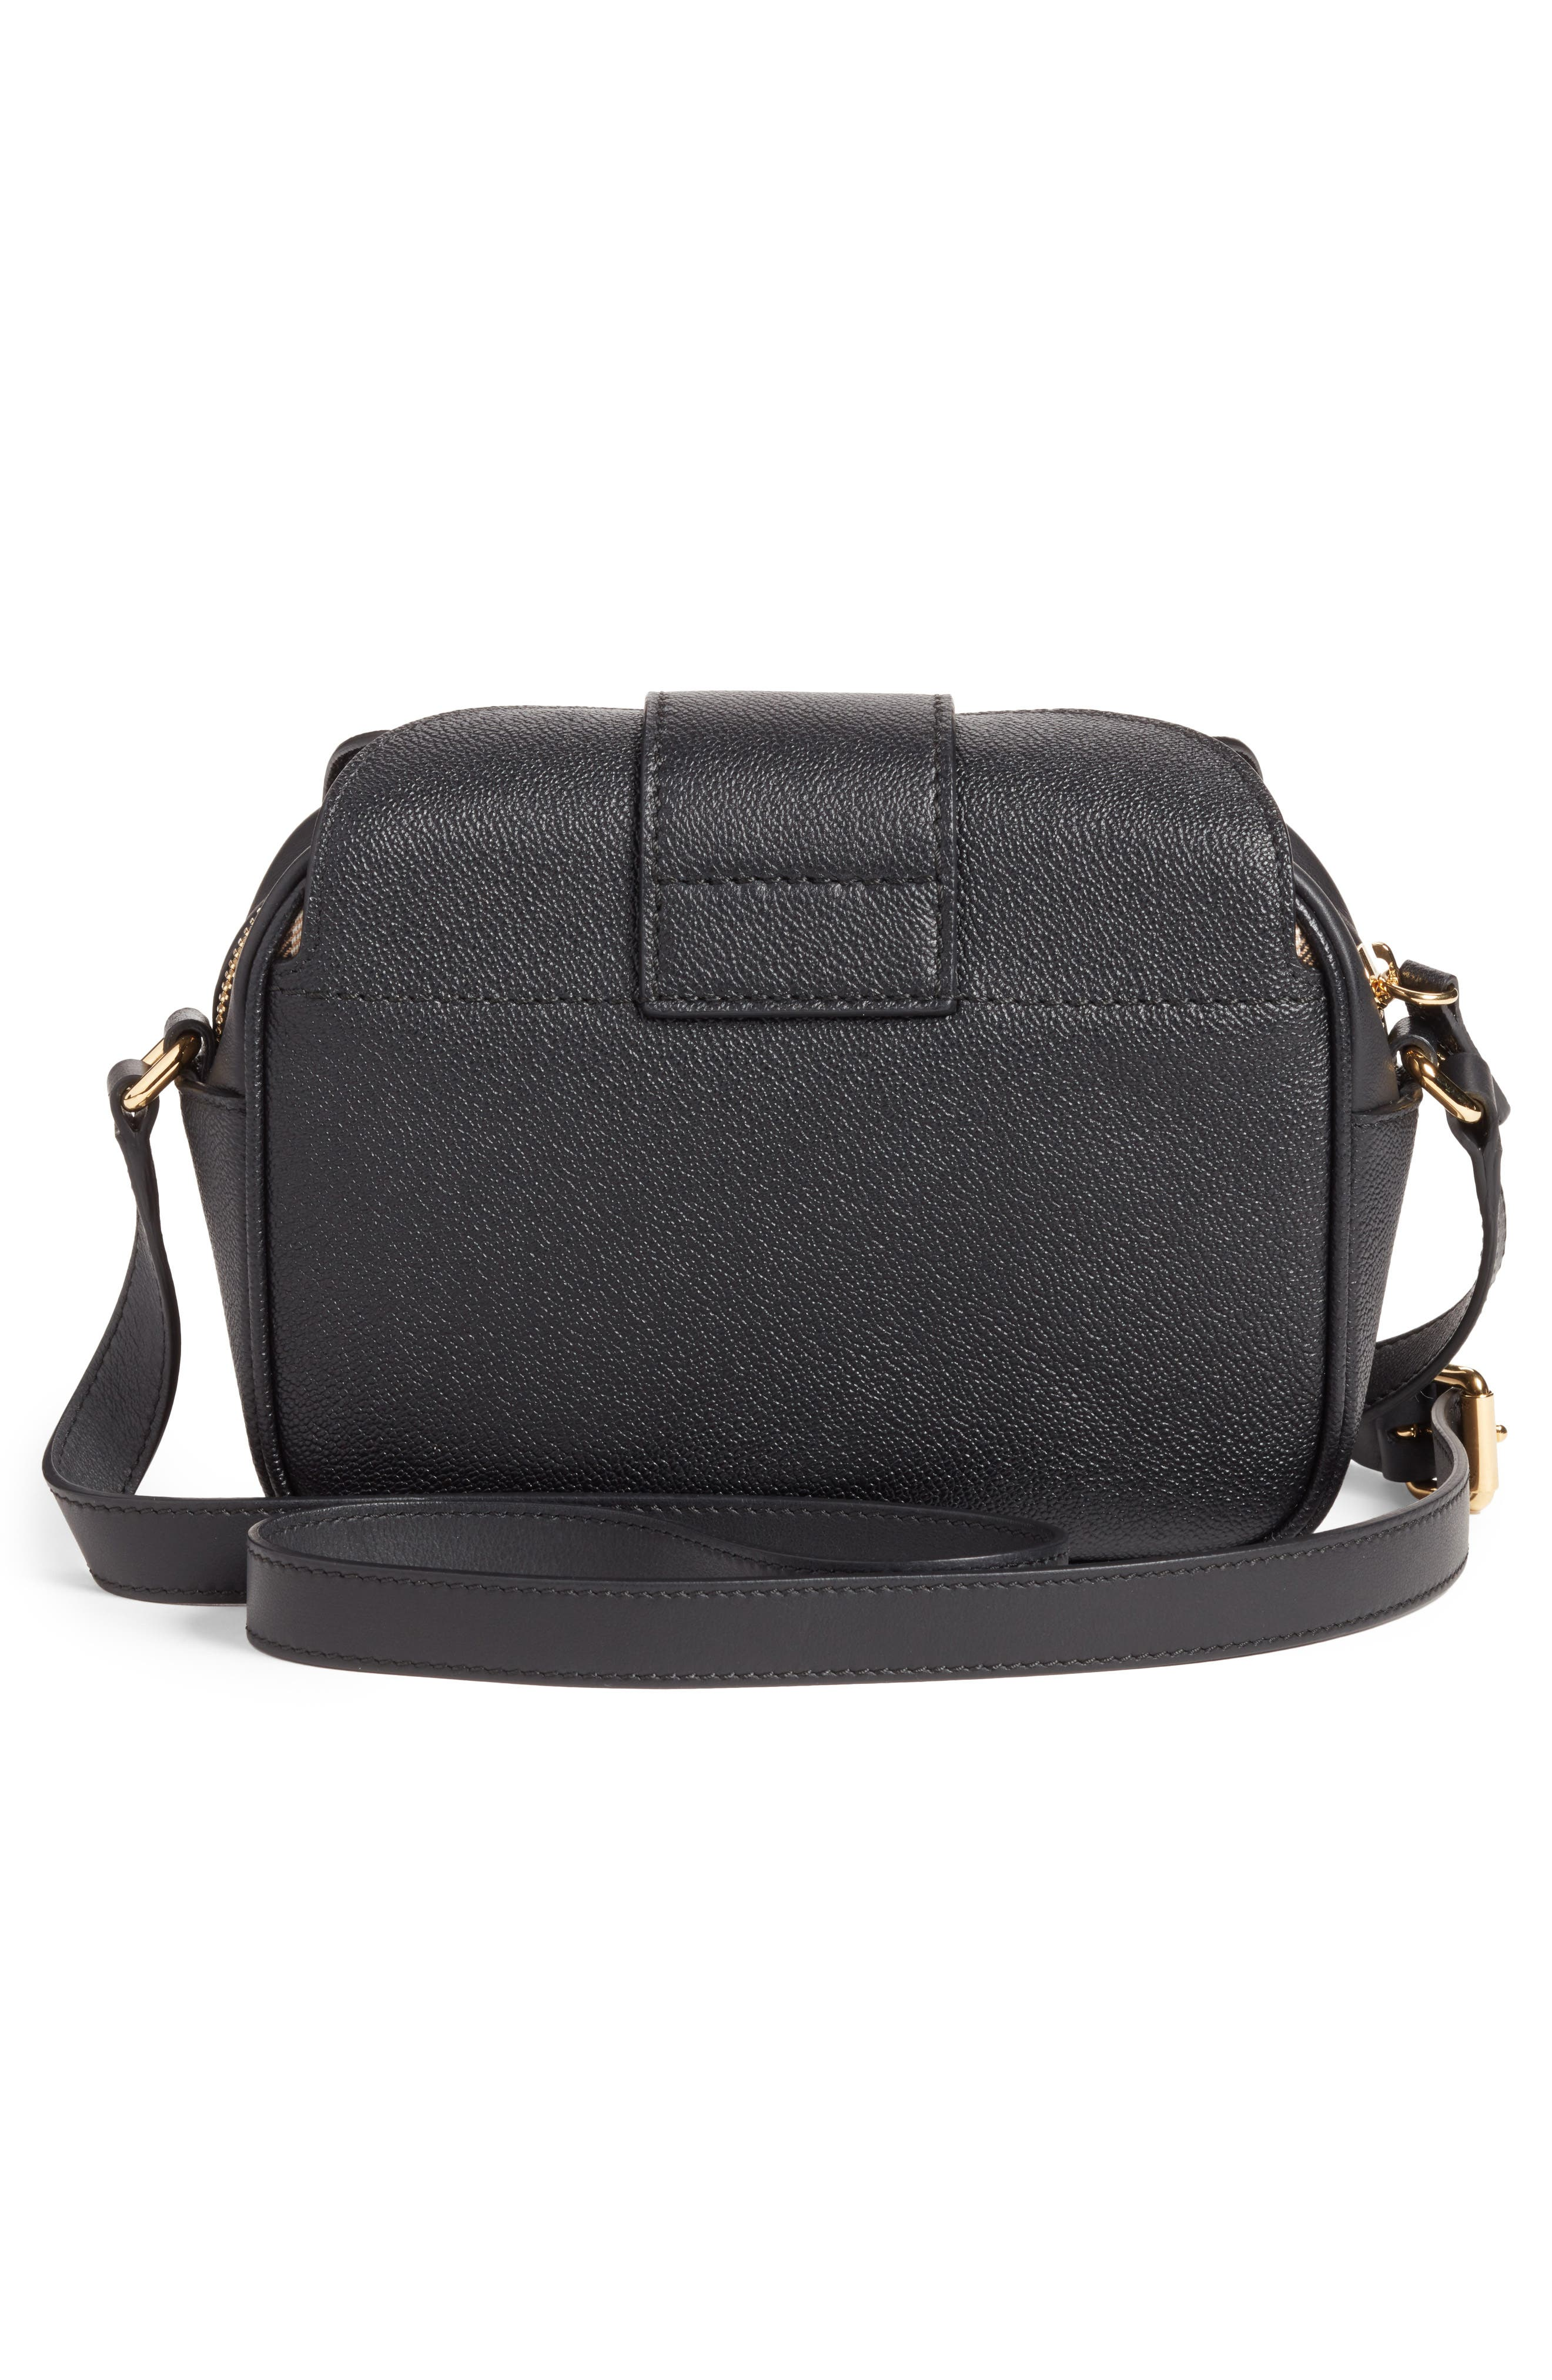 Small Buckle Leather Crossbody Bag,                             Alternate thumbnail 2, color,                             001